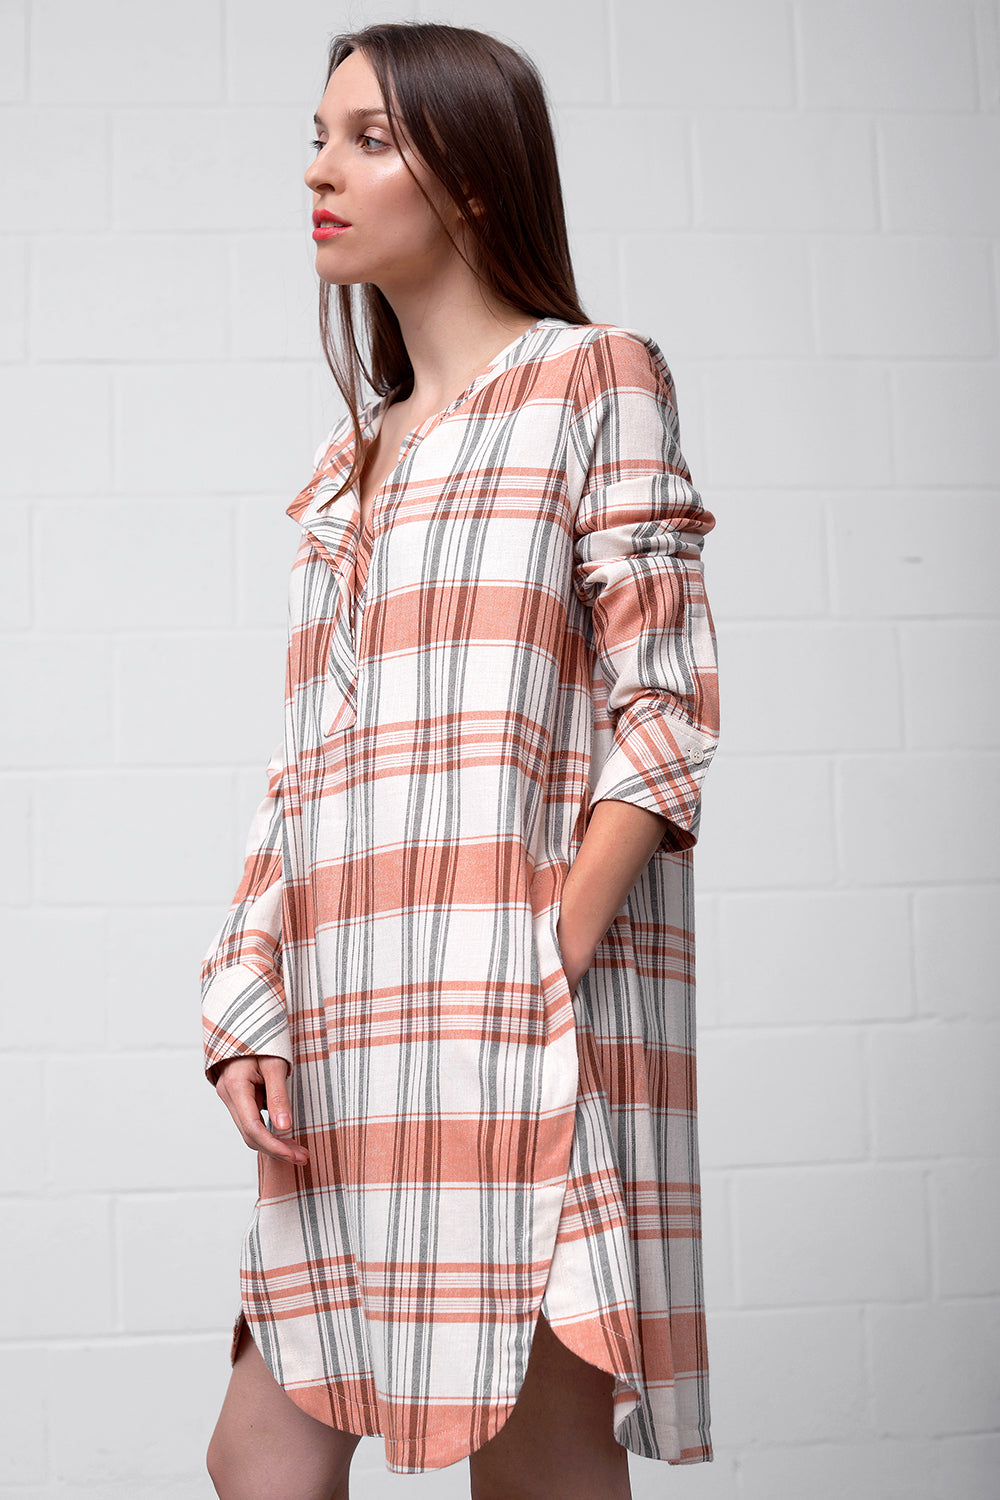 Acolina Dress - soft - PREGO - made with love - Damenmode